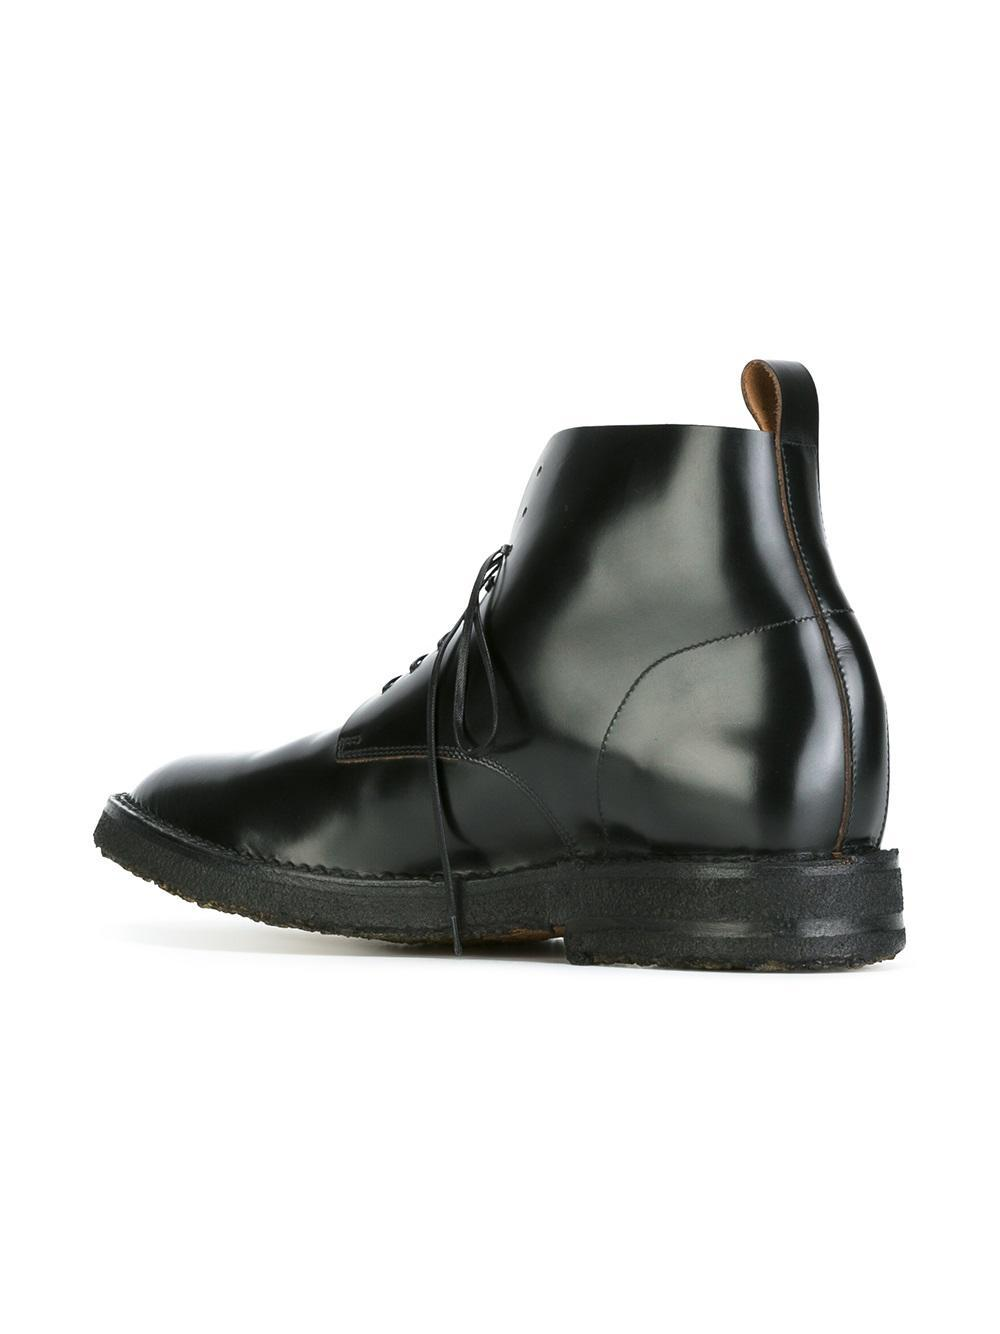 Lyst Buttero Curved Oxford Detail Boots In Black For Men